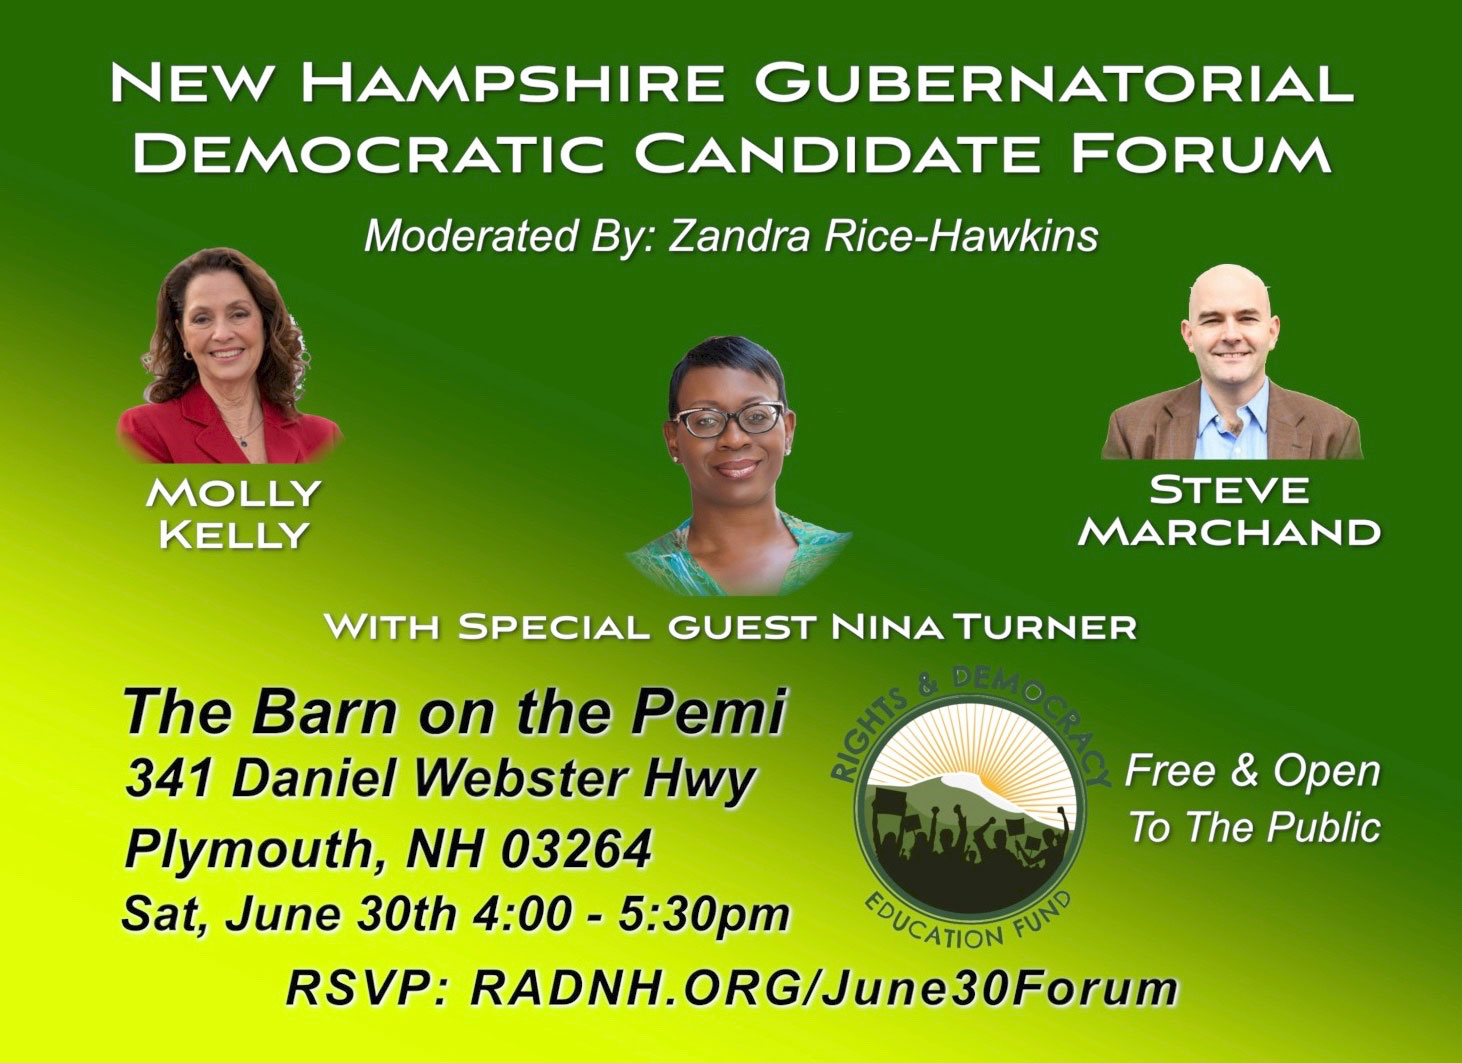 NH Gobernatorial Democratic Candidate Forum